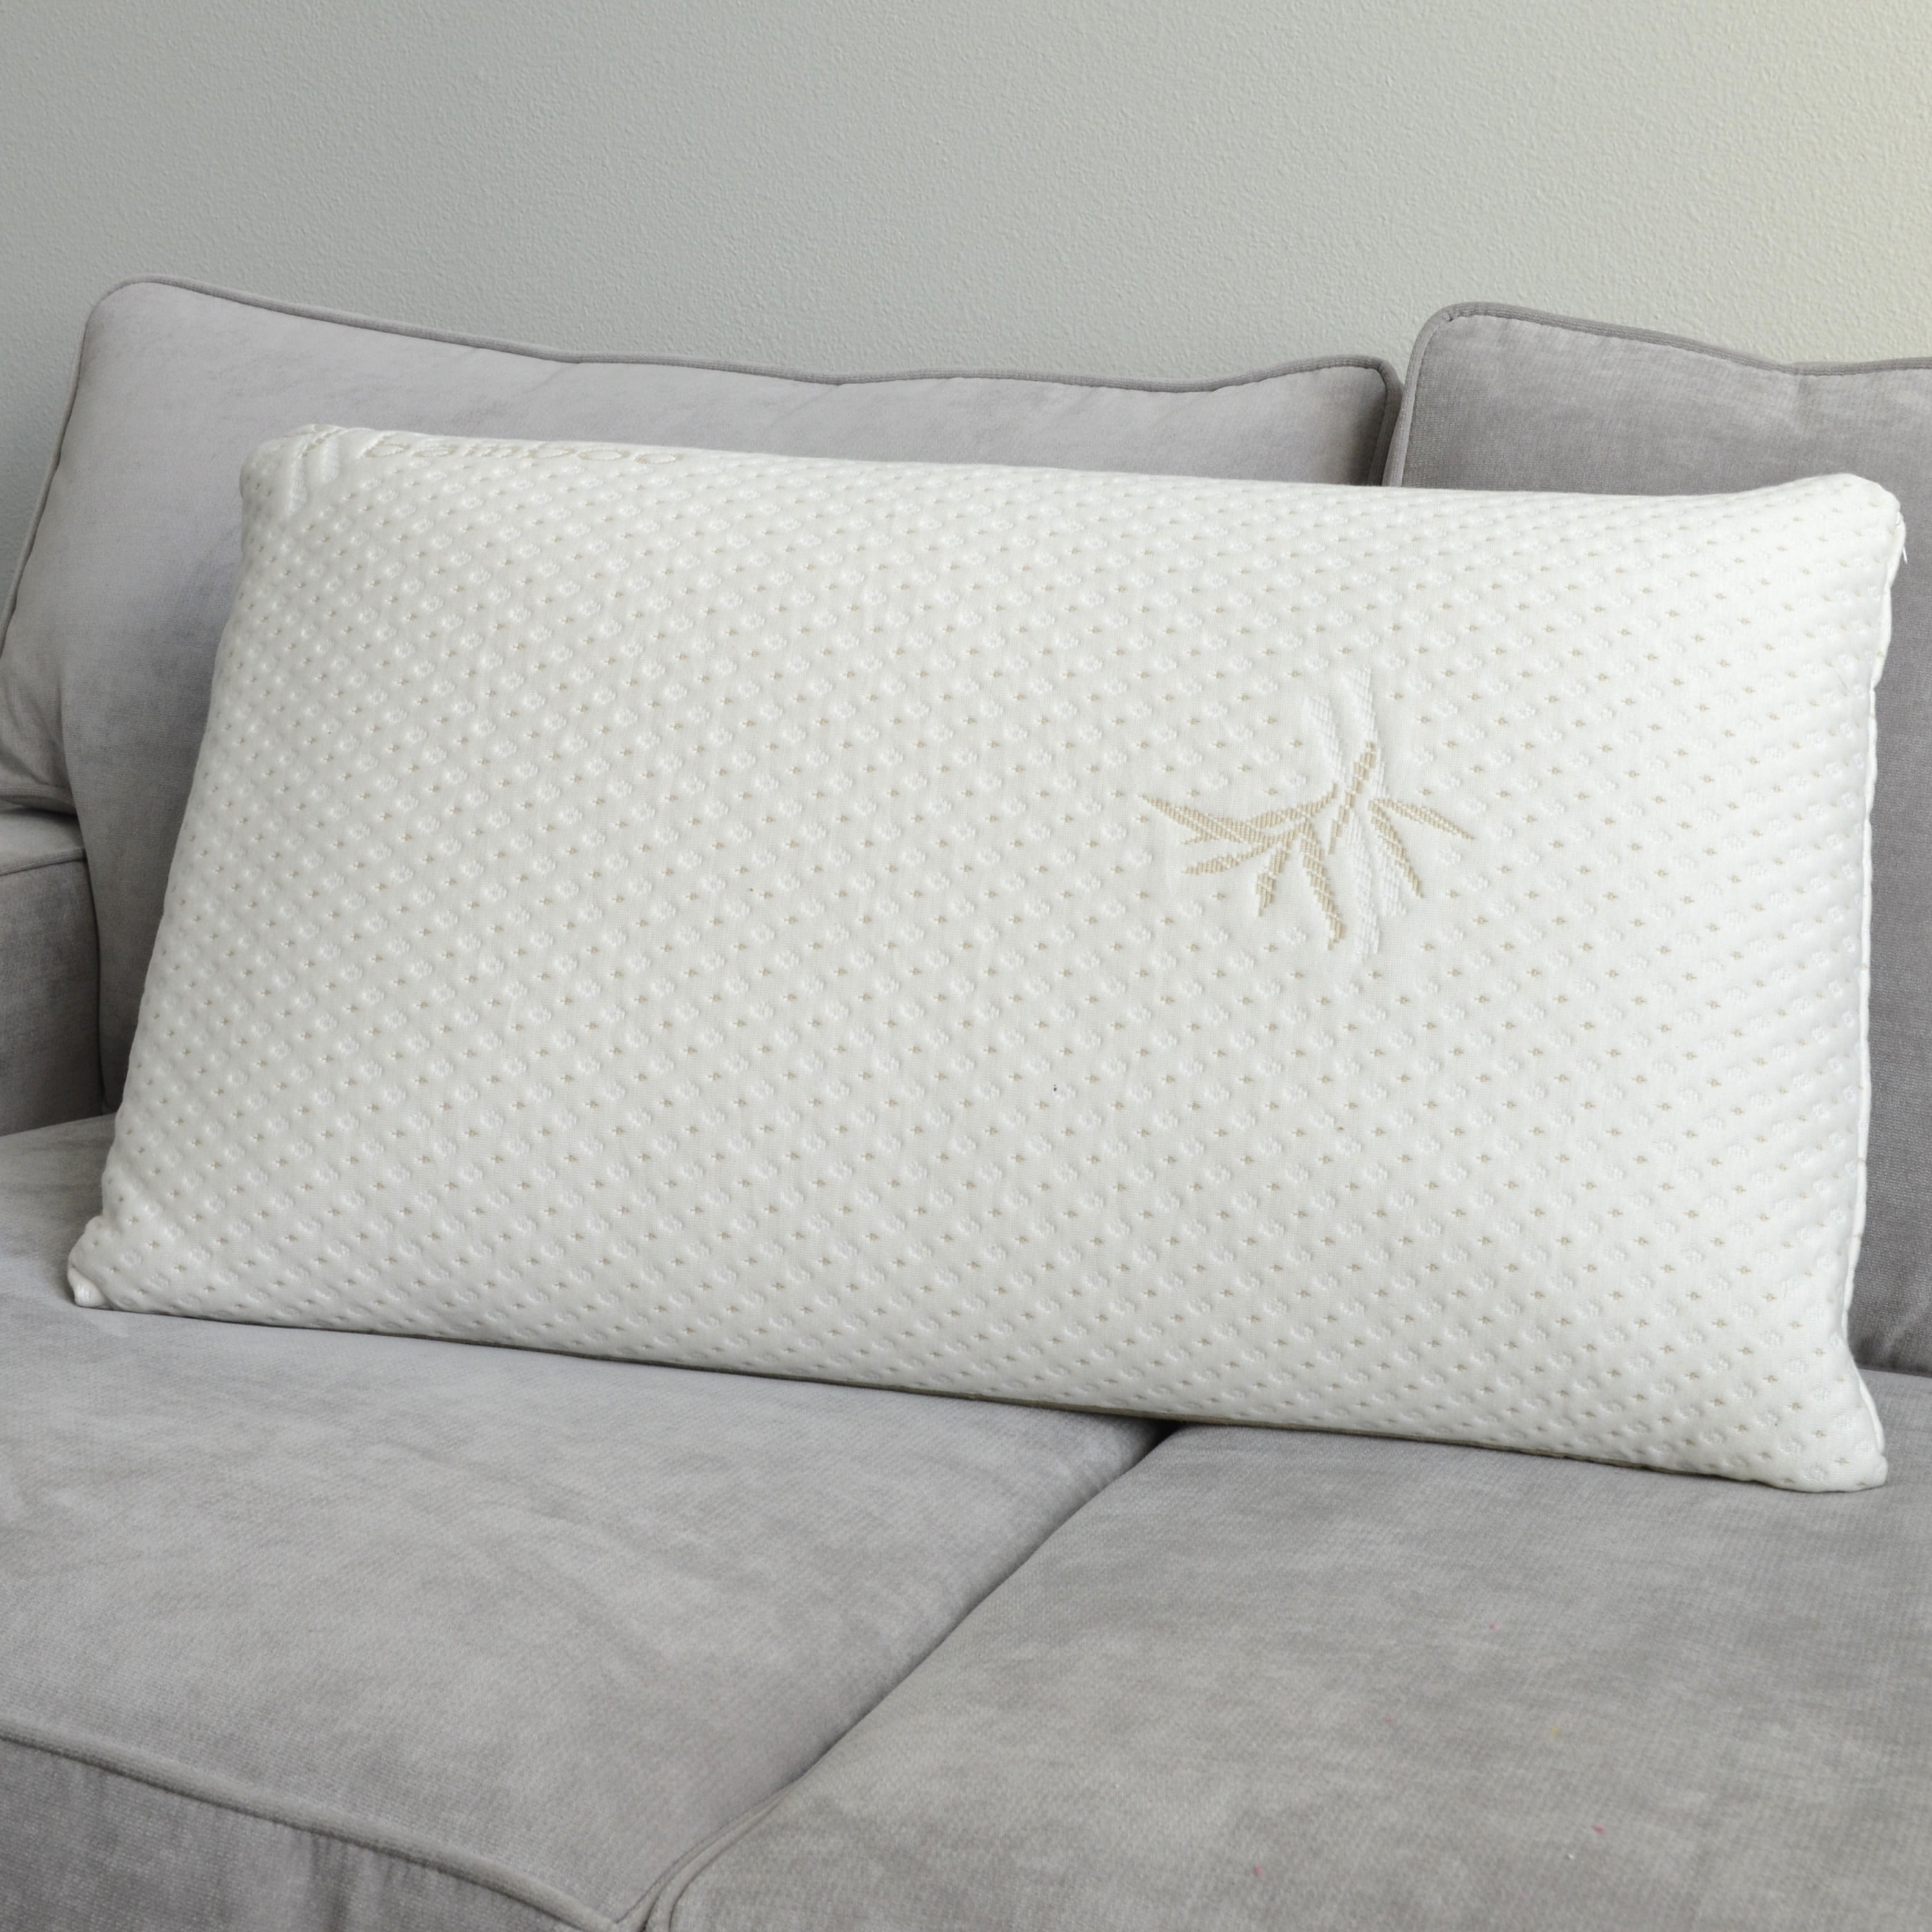 pillows foam beds therapeutic pinterest under memory pillow sleepjoy bed viscofresh and pin